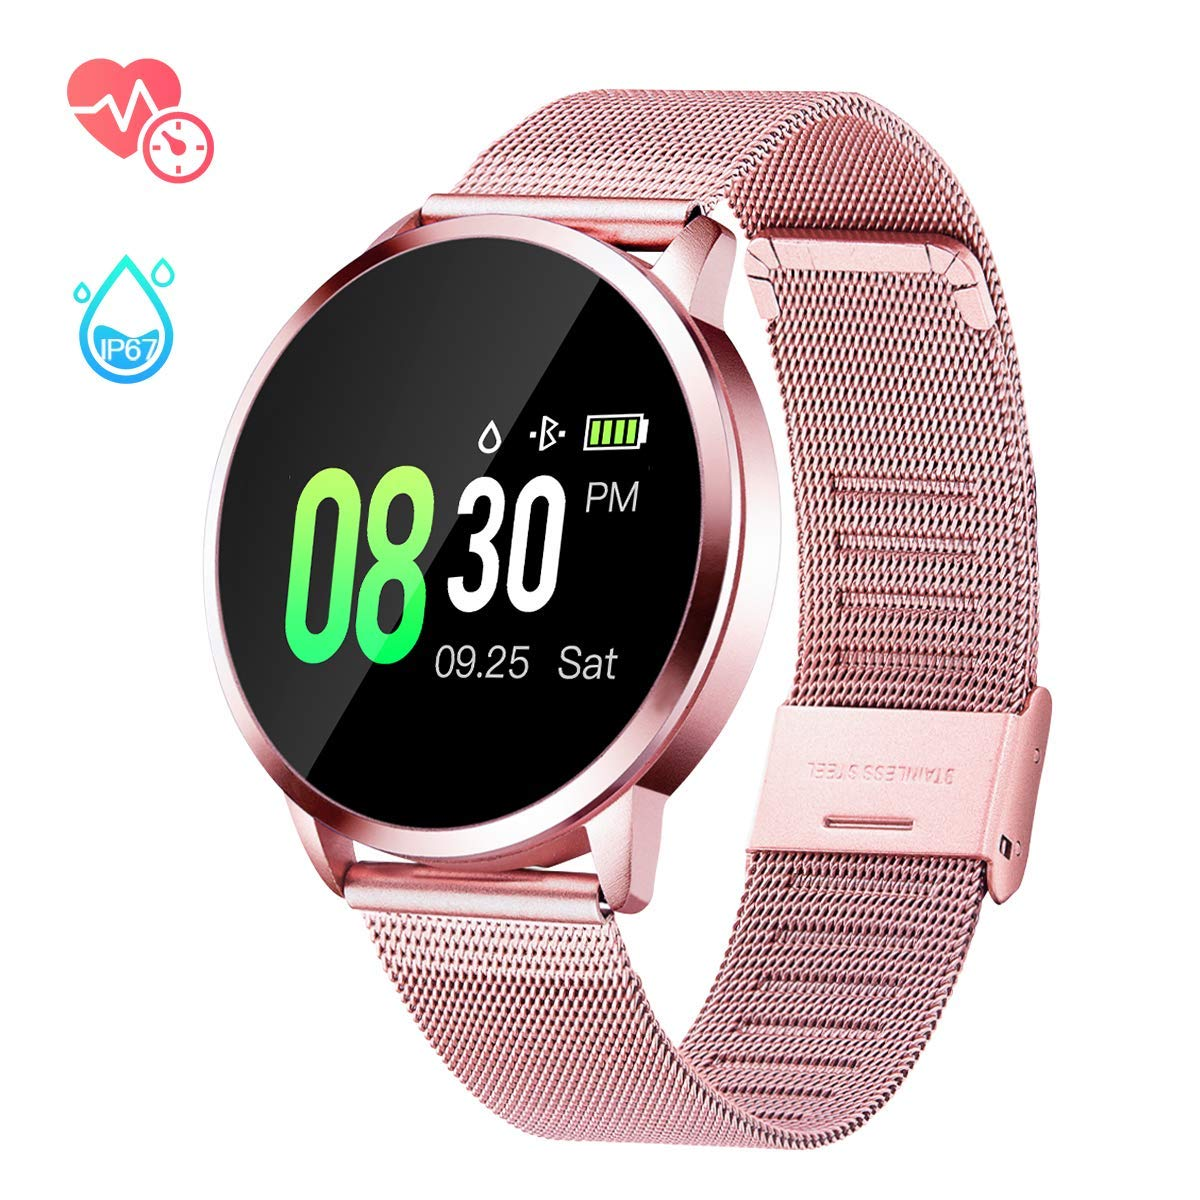 GOKOO Smart Watch for Women with All-Day Heart Rate Blood Pressure Sleep Monitor IP67 Waterproof Activity Tracker Calorie Counter Fitness Tracker Pink by GOKOO